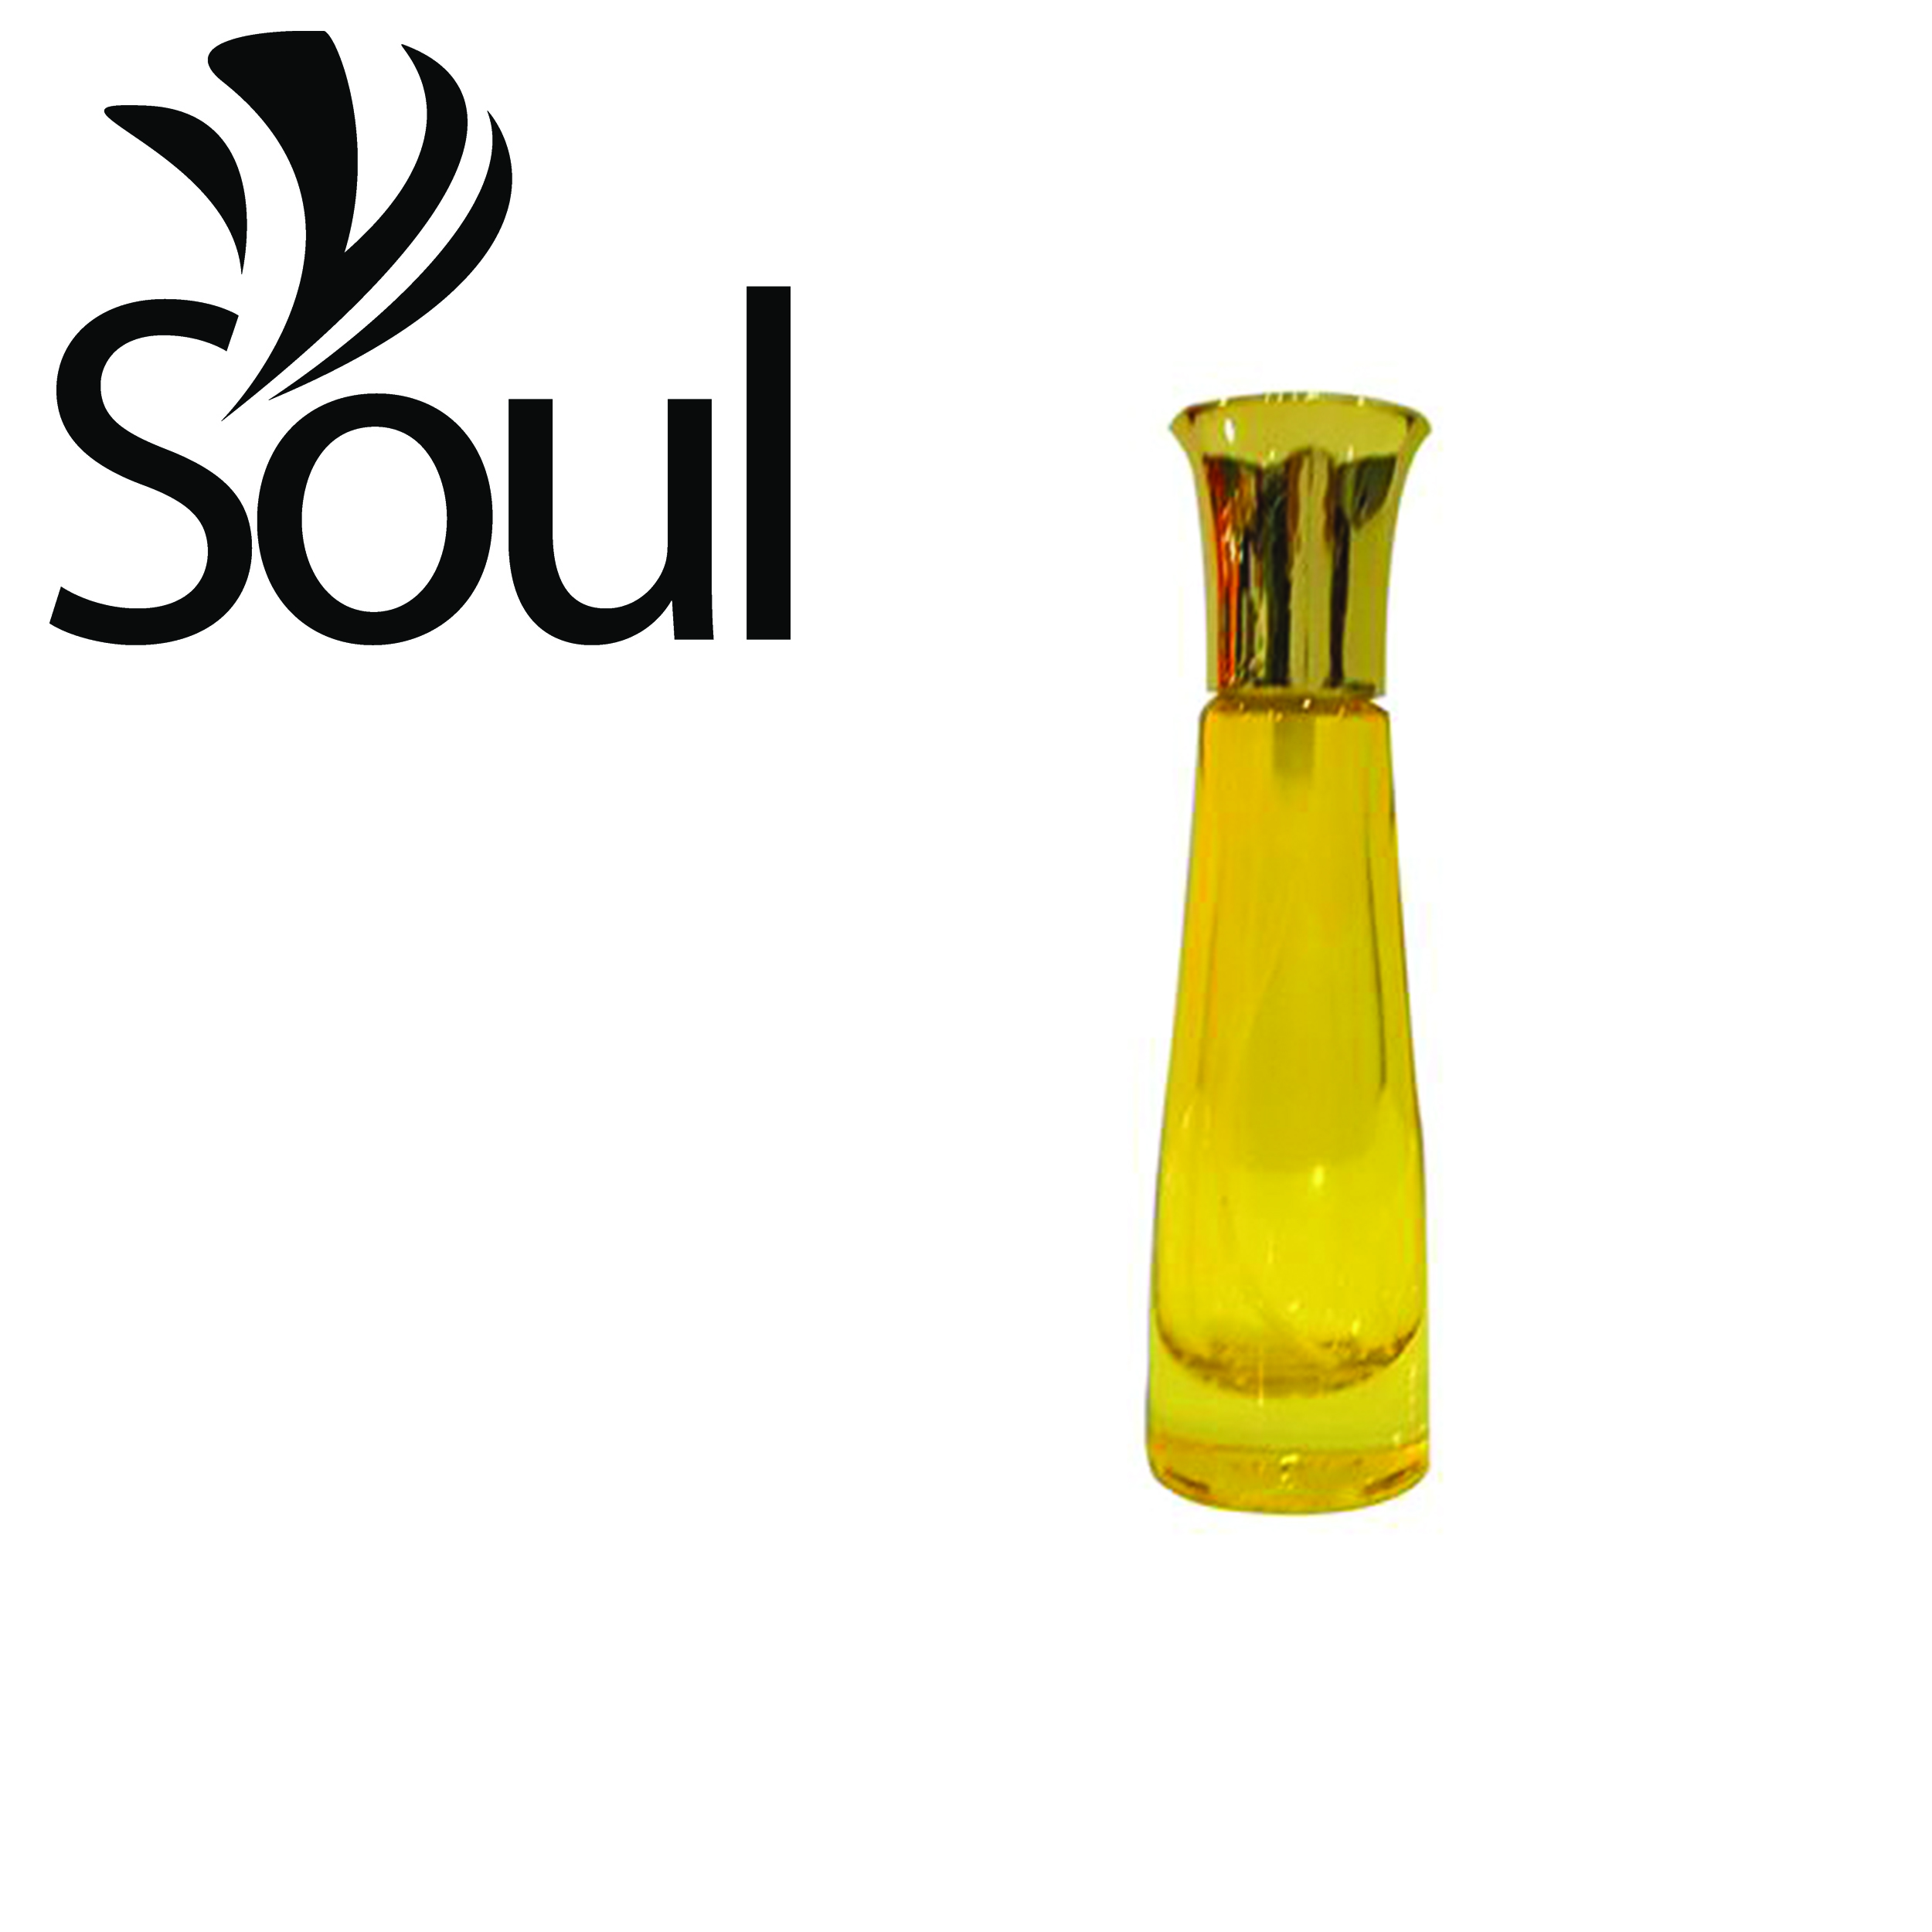 Botol Minyak Wangi Oval UV Kuning - 20ml - 10pcs